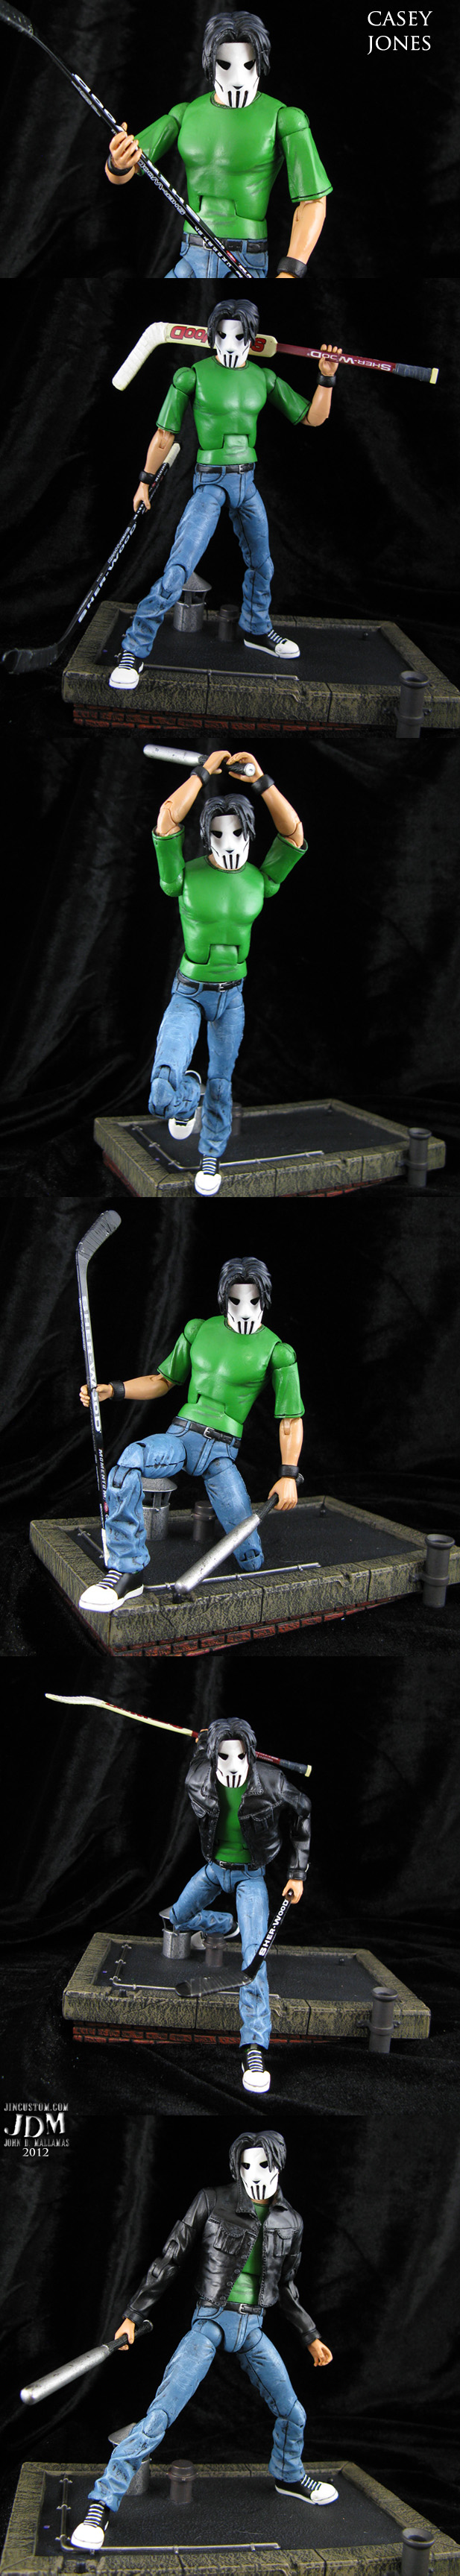 Casey Jones Figure